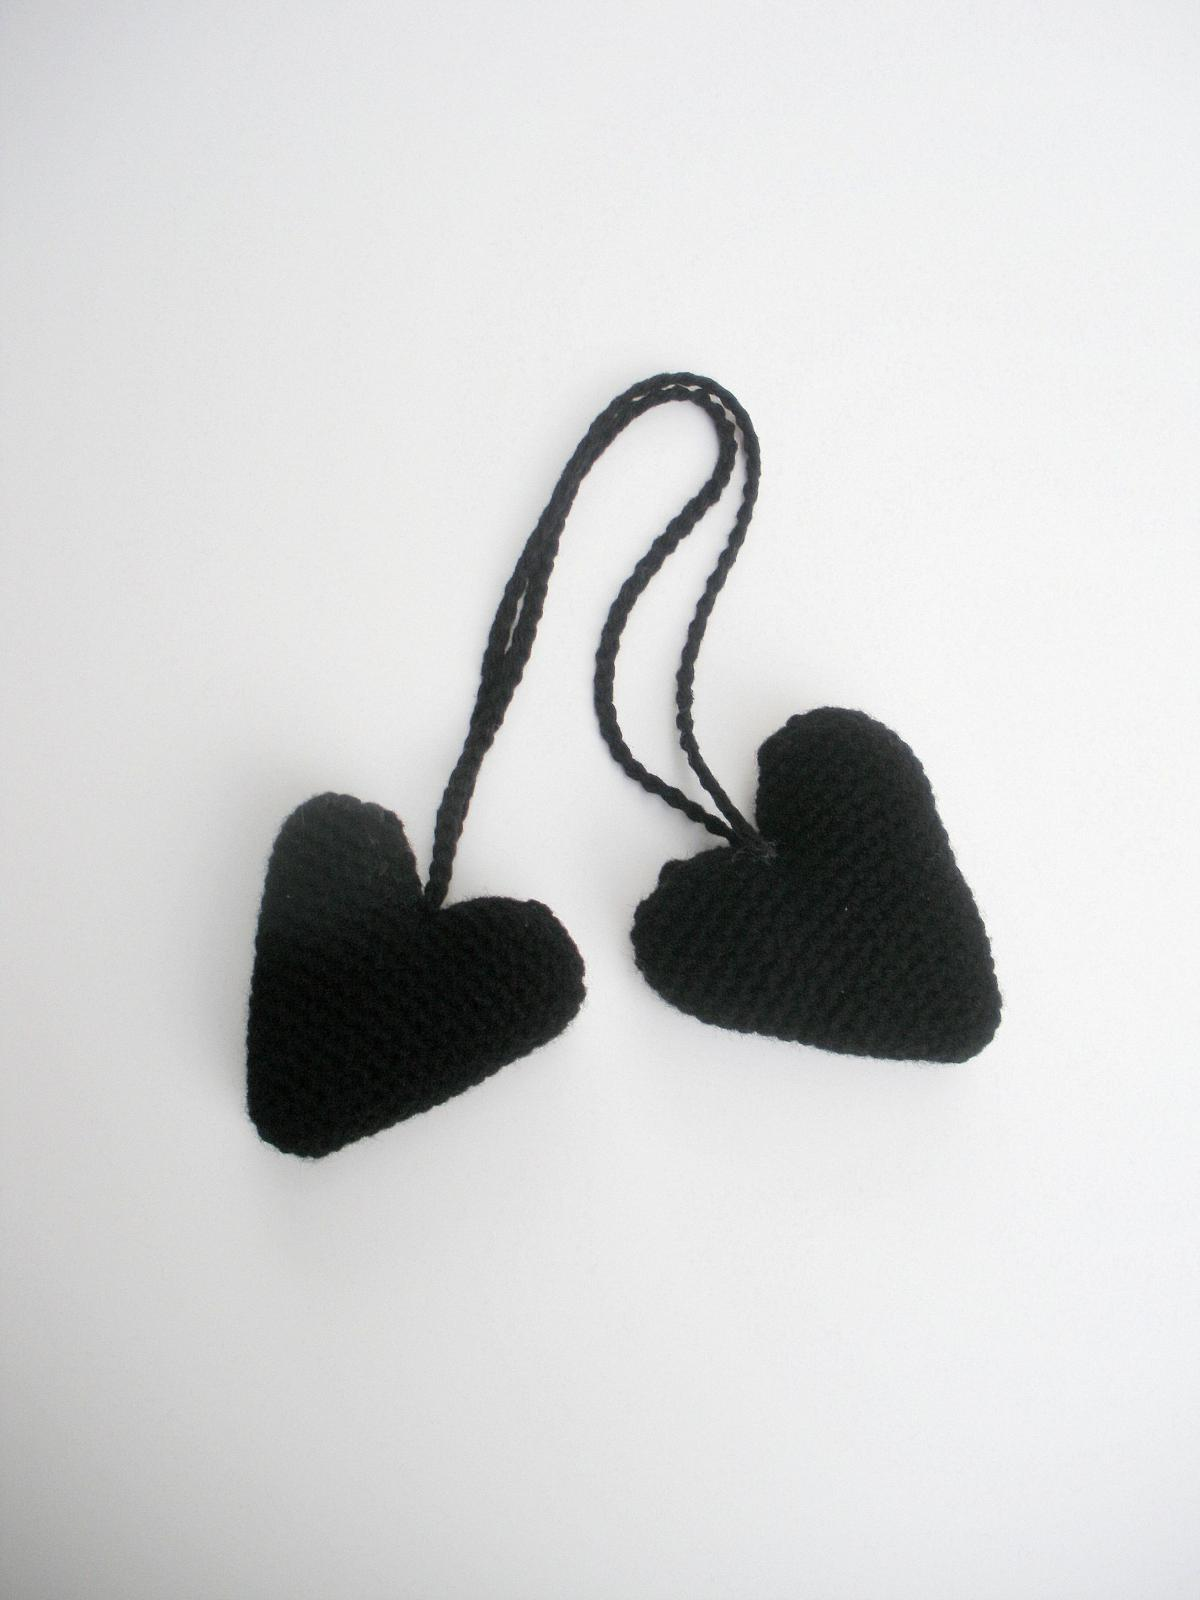 Plush Crochet Black Hanging Valentine Heart Stuffies, ready to ship.